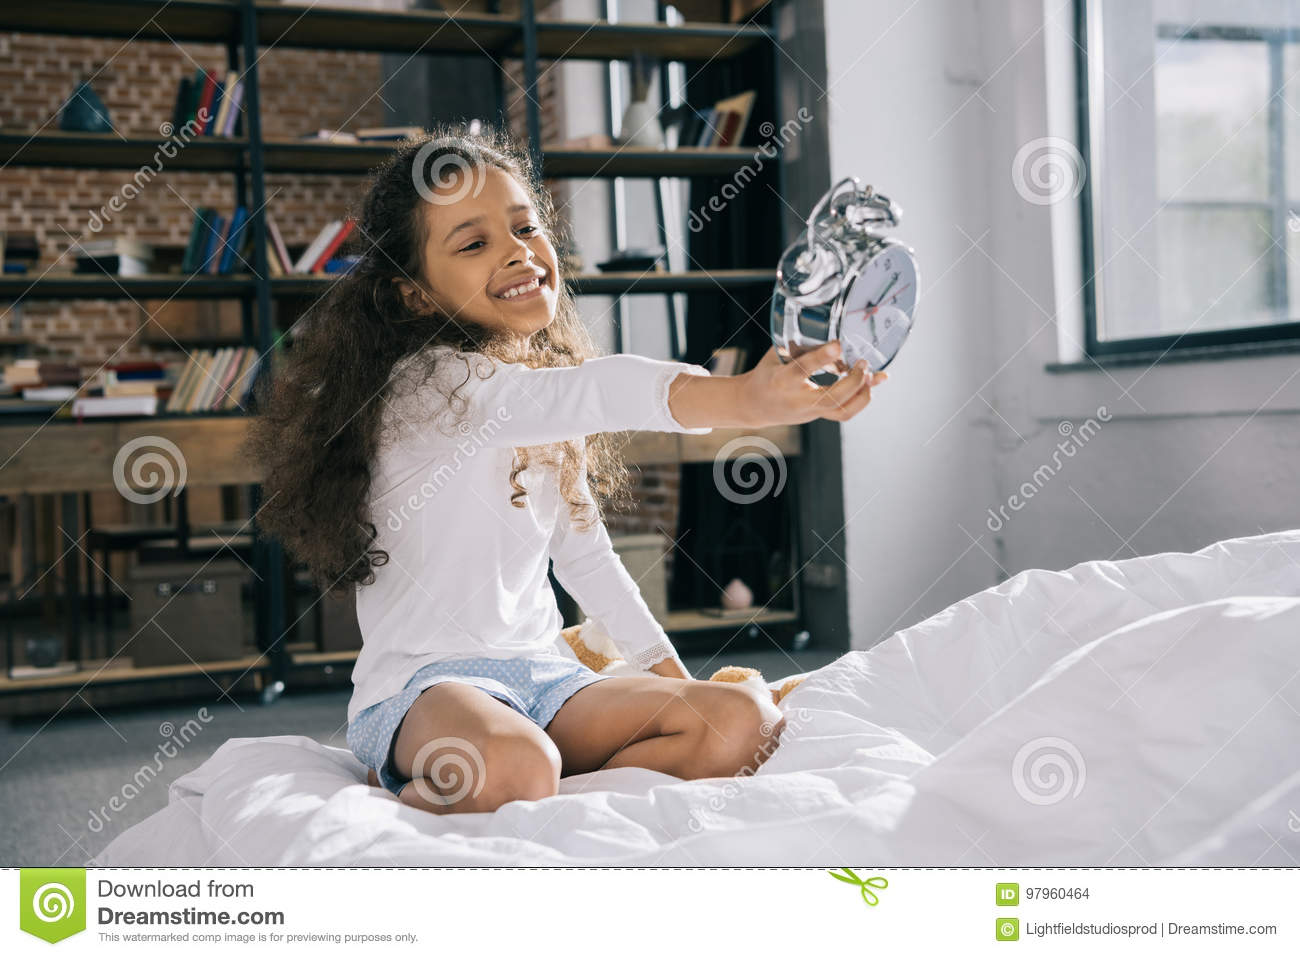 Little girl holding alarm clock while sitting on bed